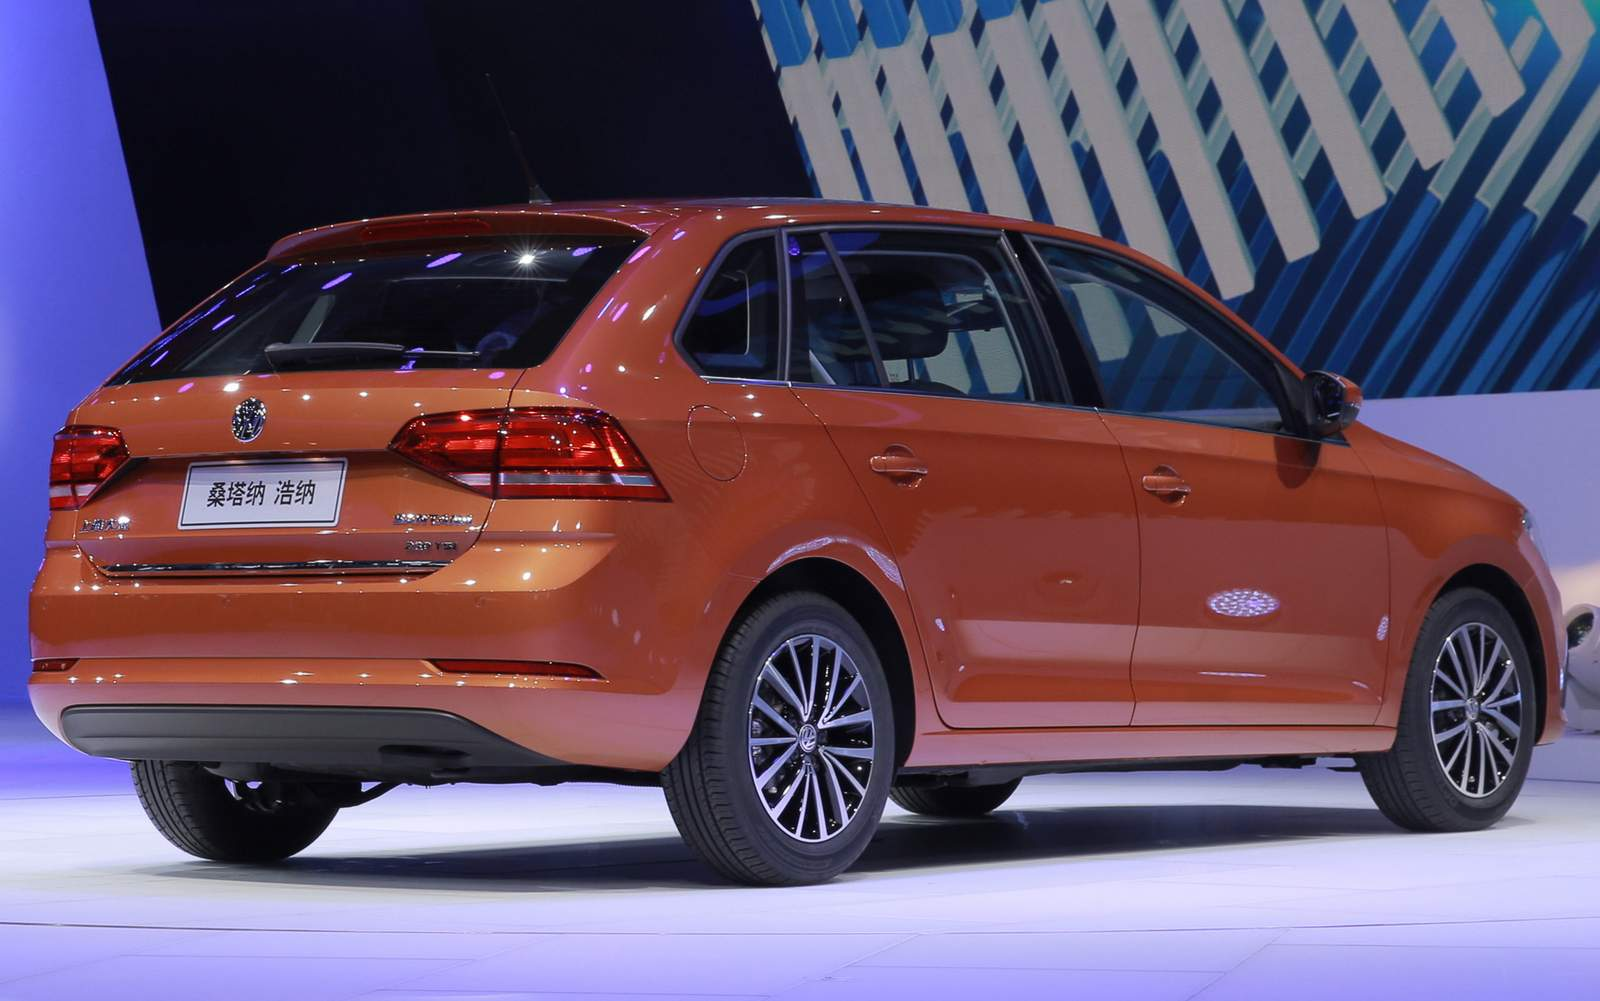 Novo VW Santana 2015 Hatch